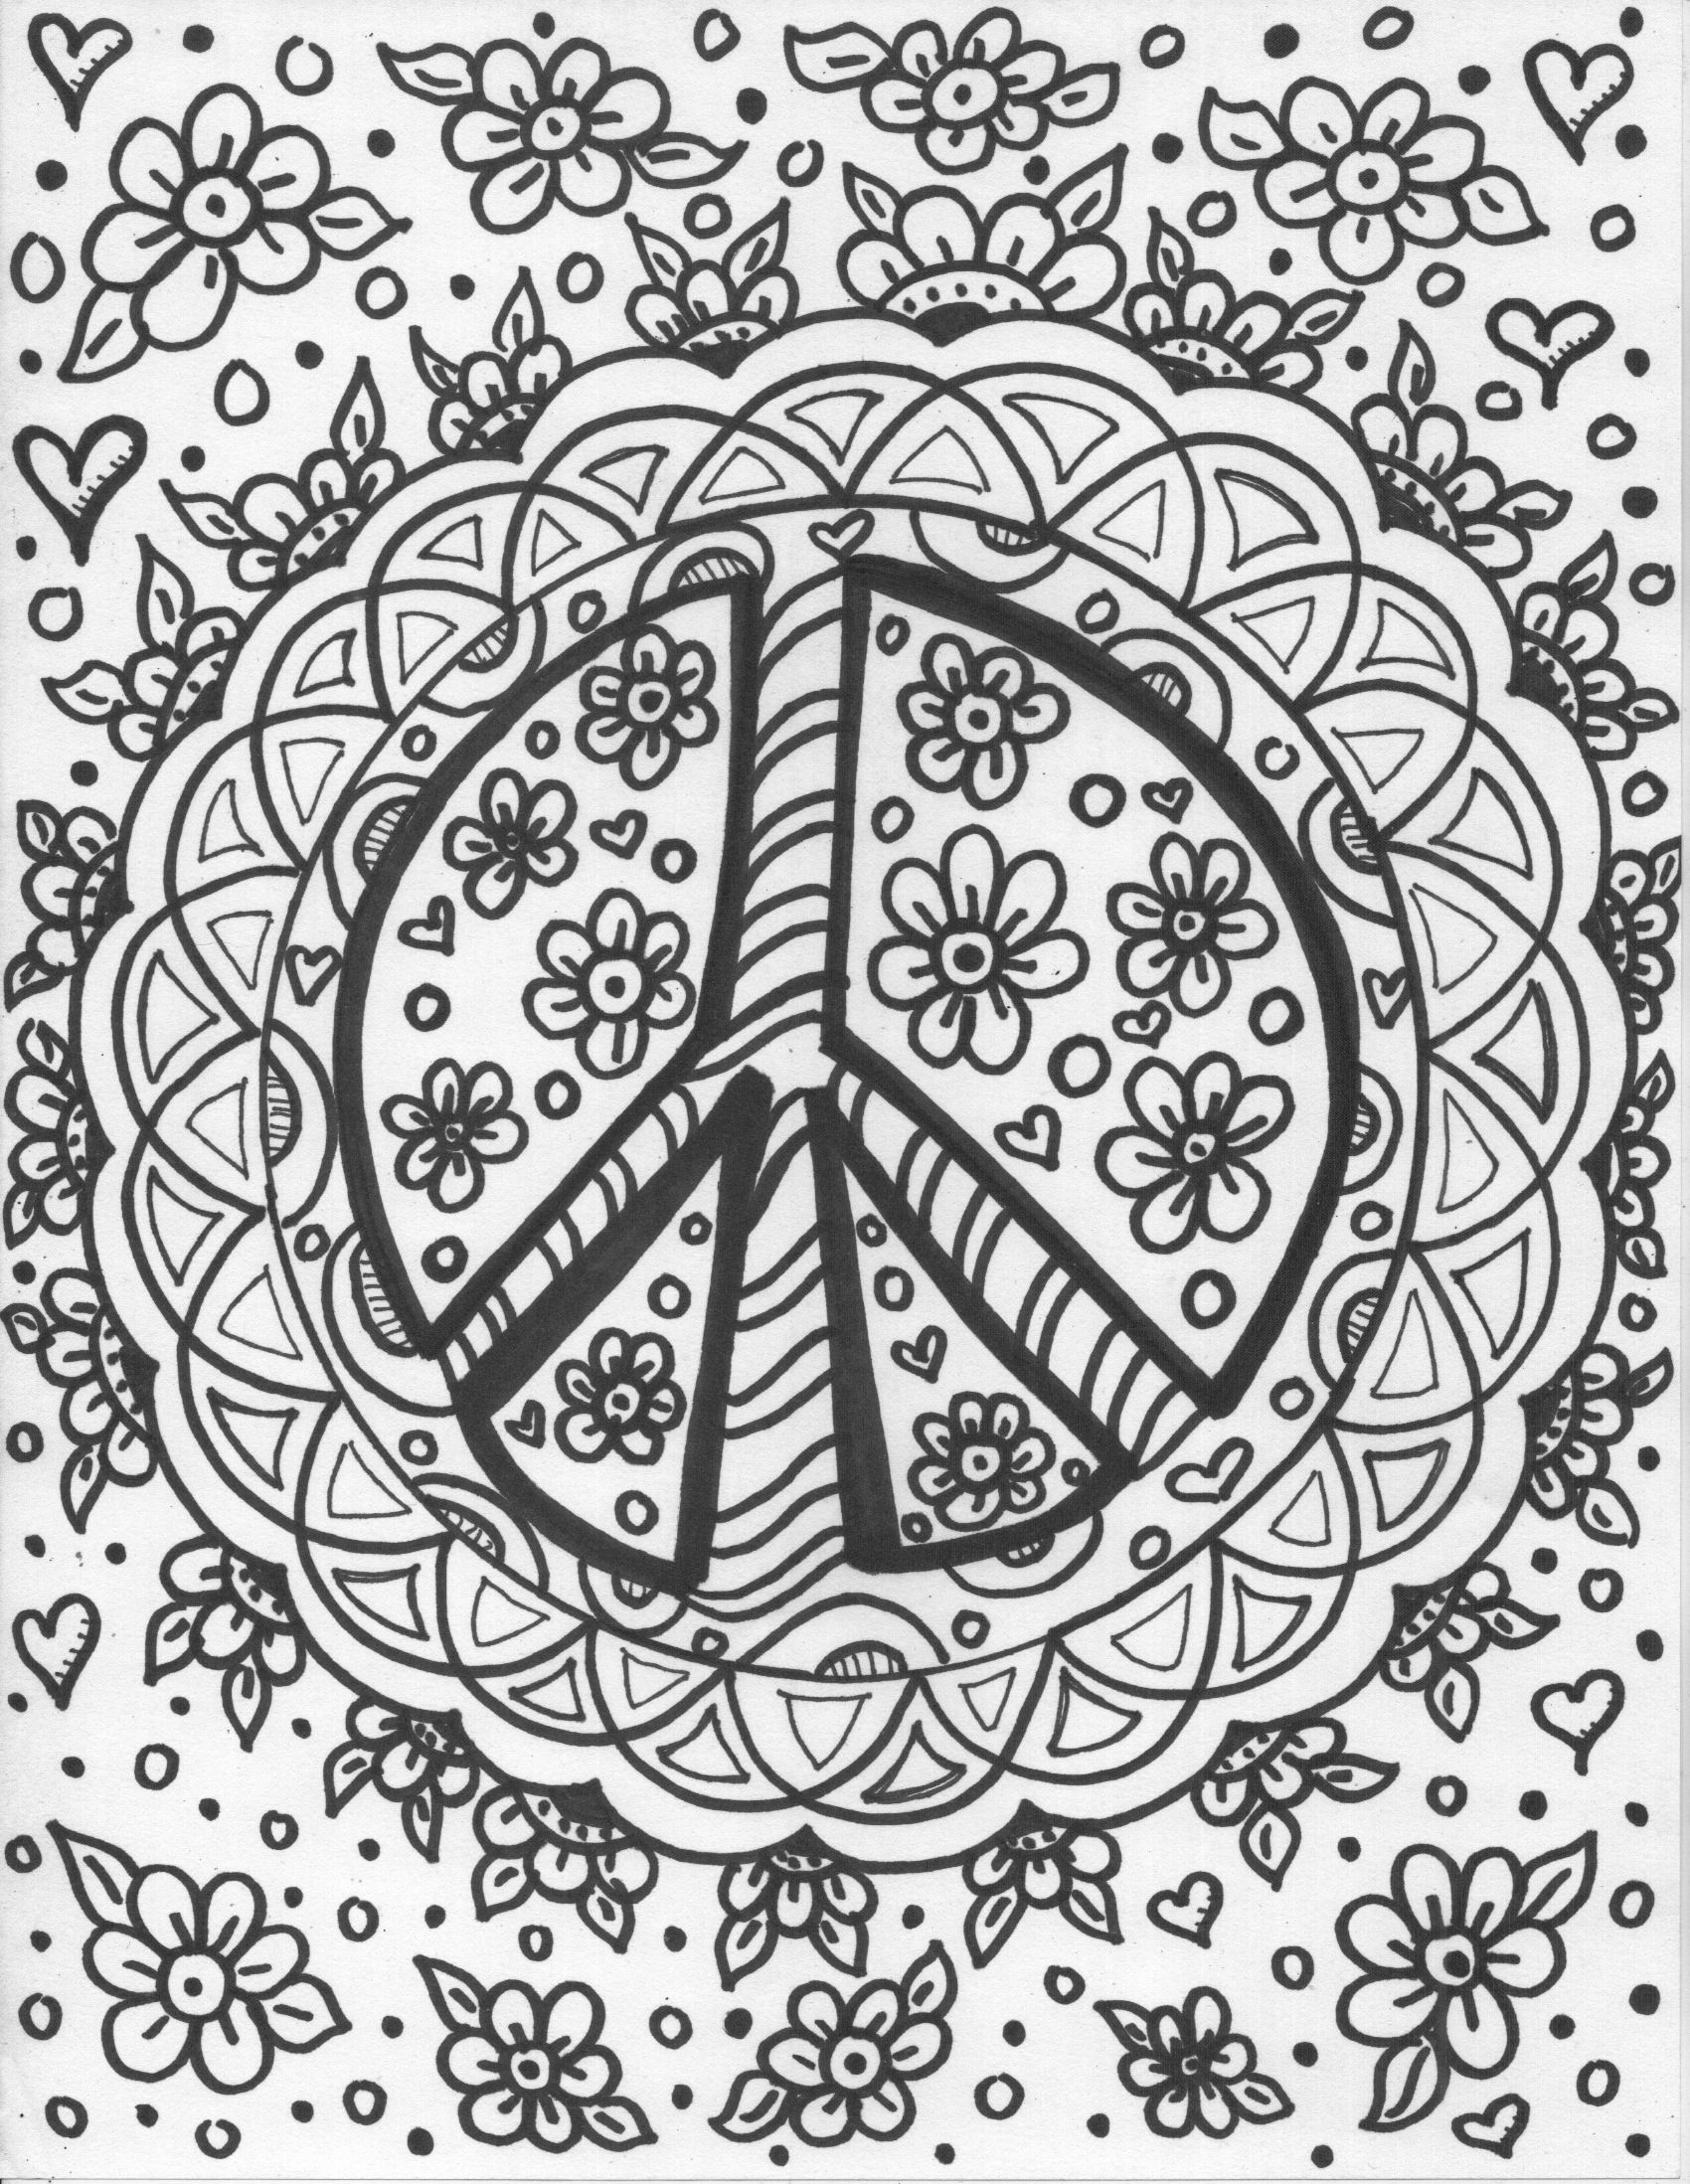 coloring book pages…design your own coloring book | iColor "|1700|2197|?|en|2|57b6f9bafb838339bb6ad2b01a63a722|False|UNLIKELY|0.29145950078964233